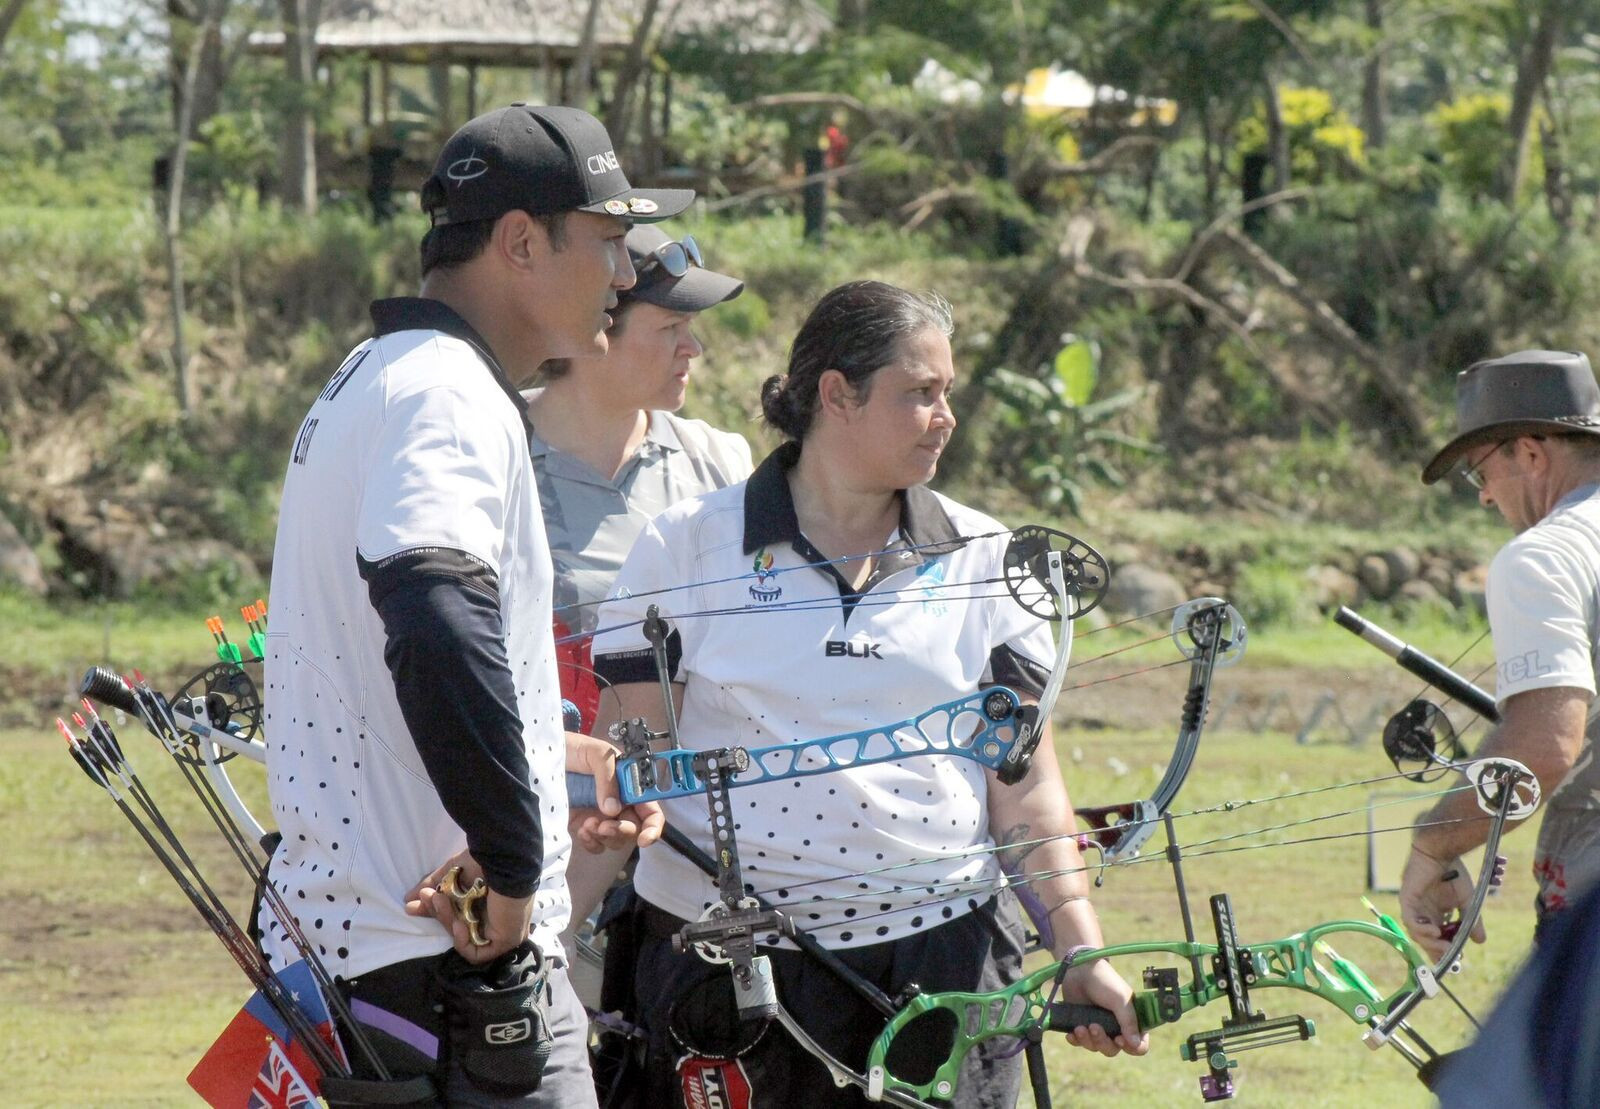 Lisa and Fred Leota won the mixed team compound at Sports Field, Faleata ©Games News Service